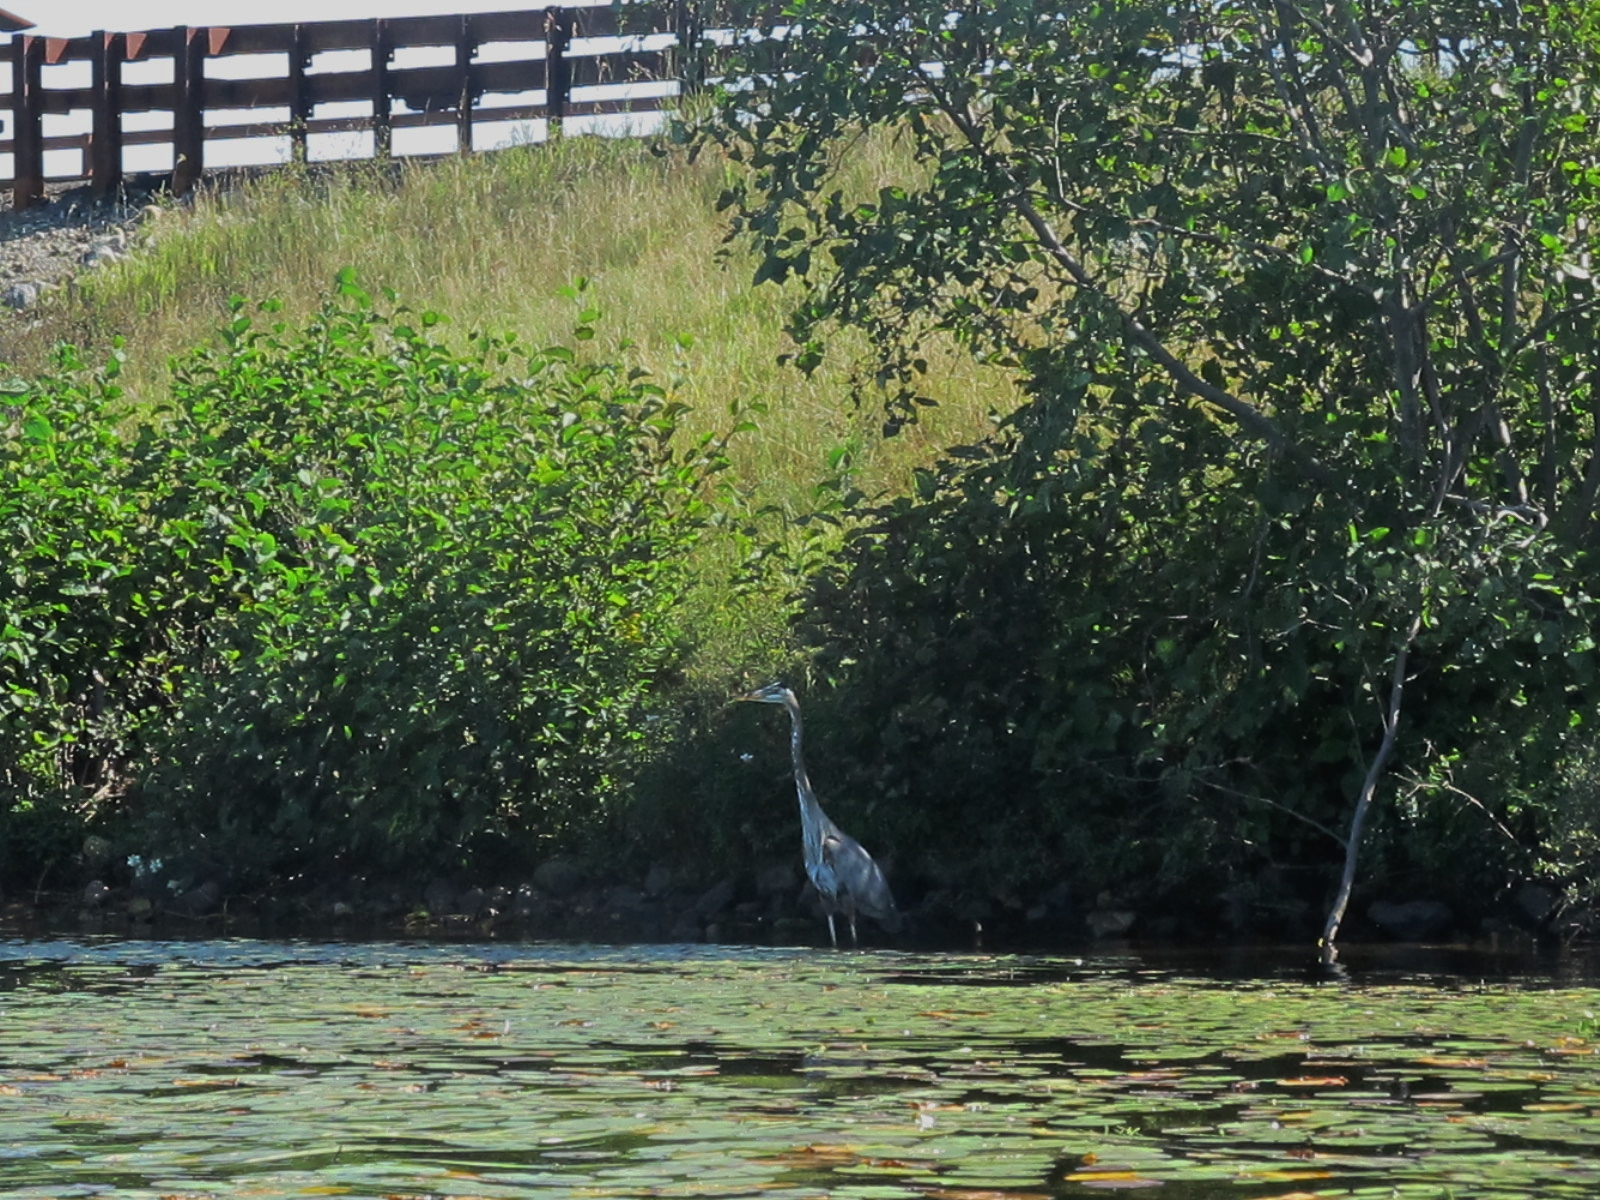 The Blue Heron below route 30 bridge. She looks like a stick, but we can still see her!